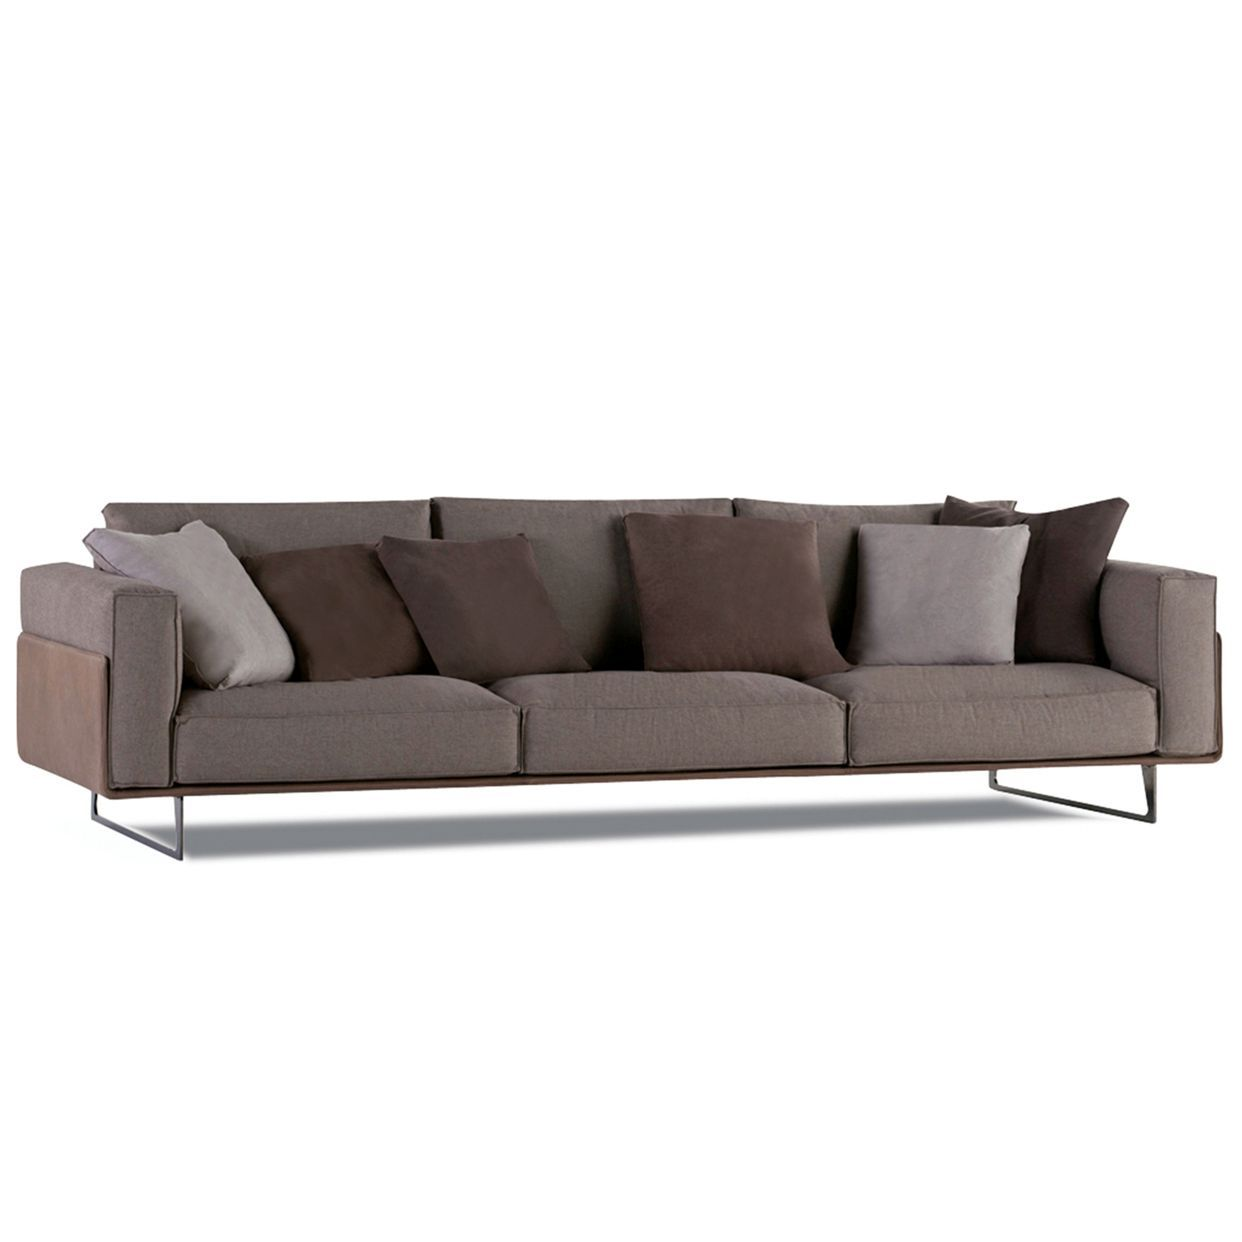 Focus On Furniture Sofa Bed Focus 5 Seat Sofa Sofas Roche Bobois Furniture